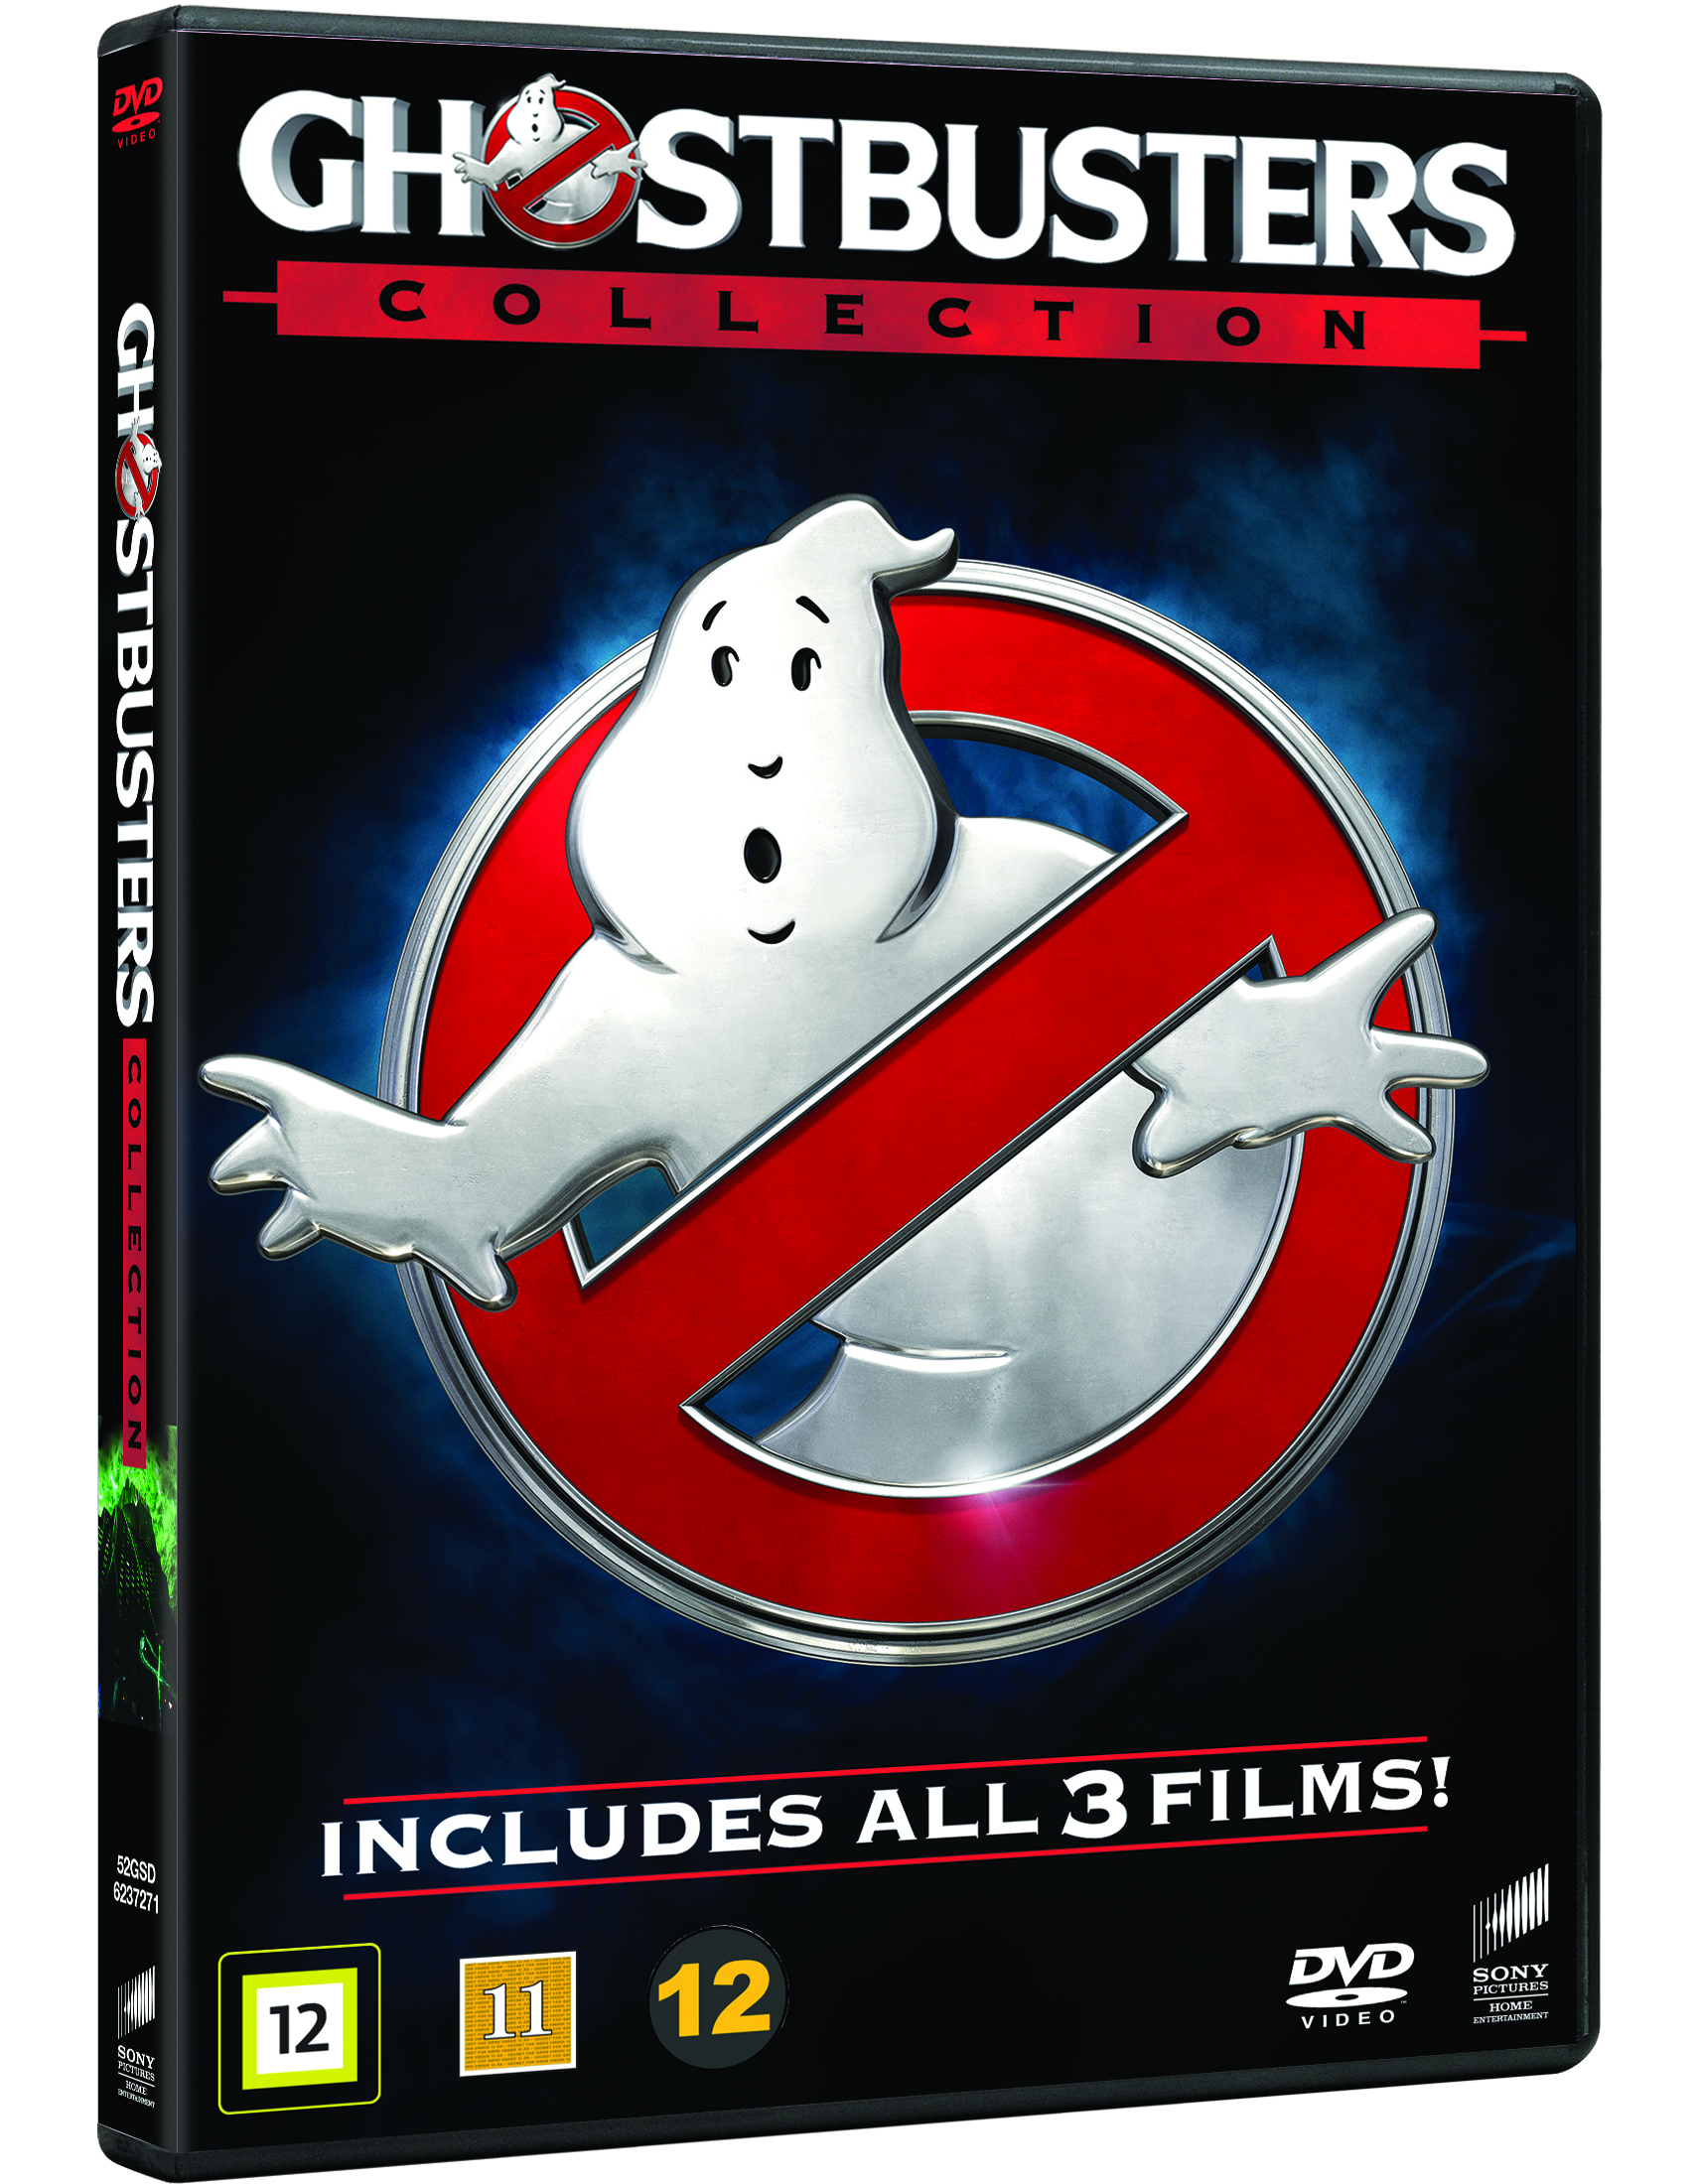 Ghostbusters Collection - 3 Movies - DVD